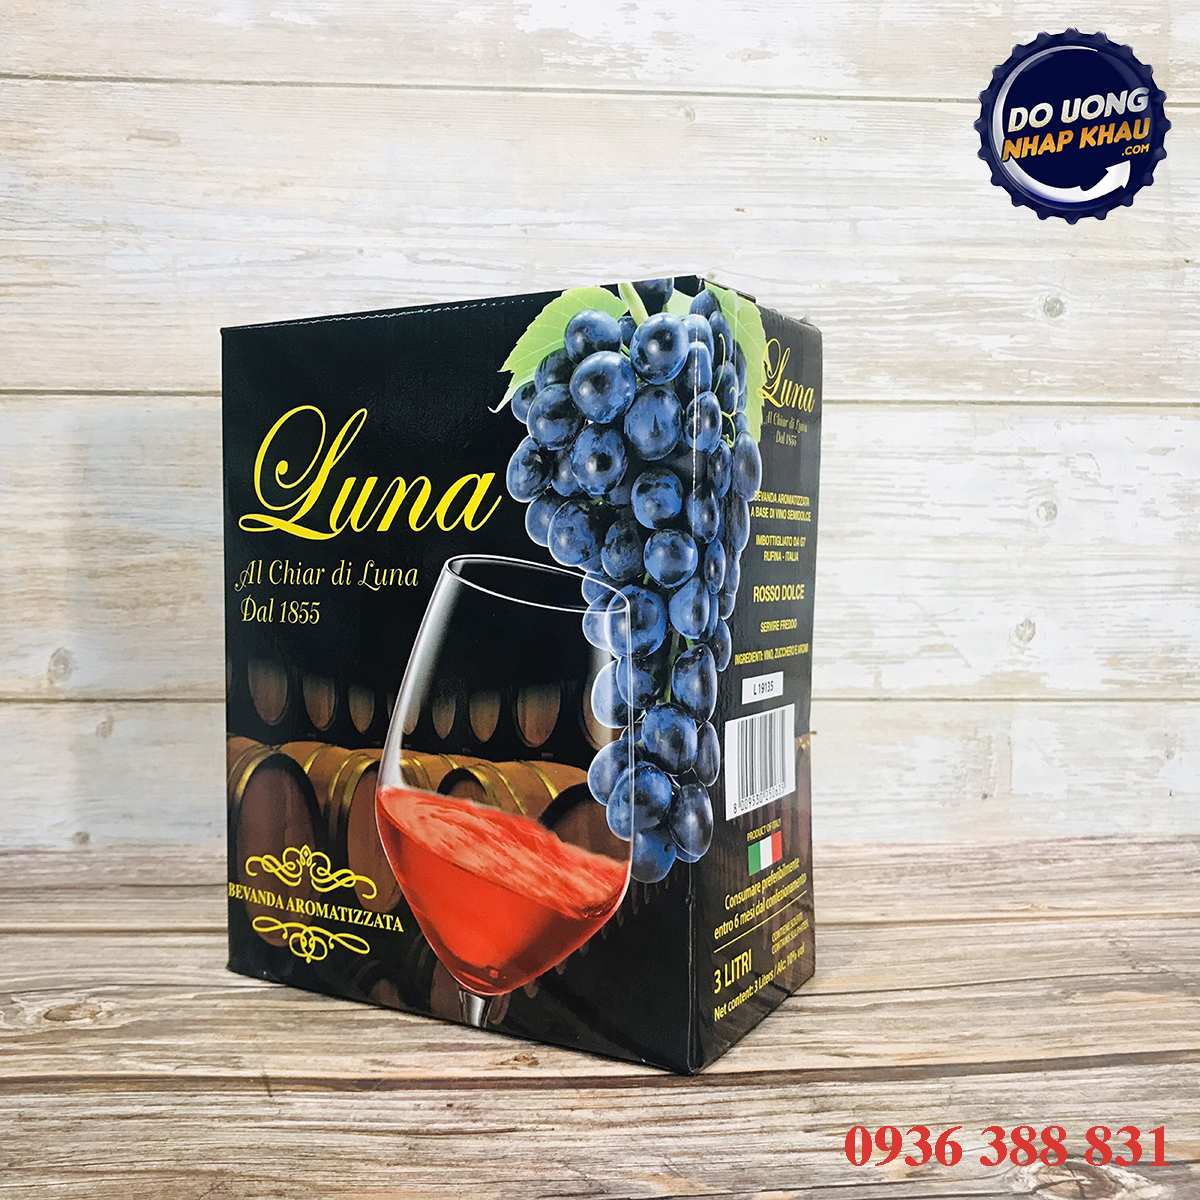 Vang bịch 3L Luna Rosso Dolce 10%